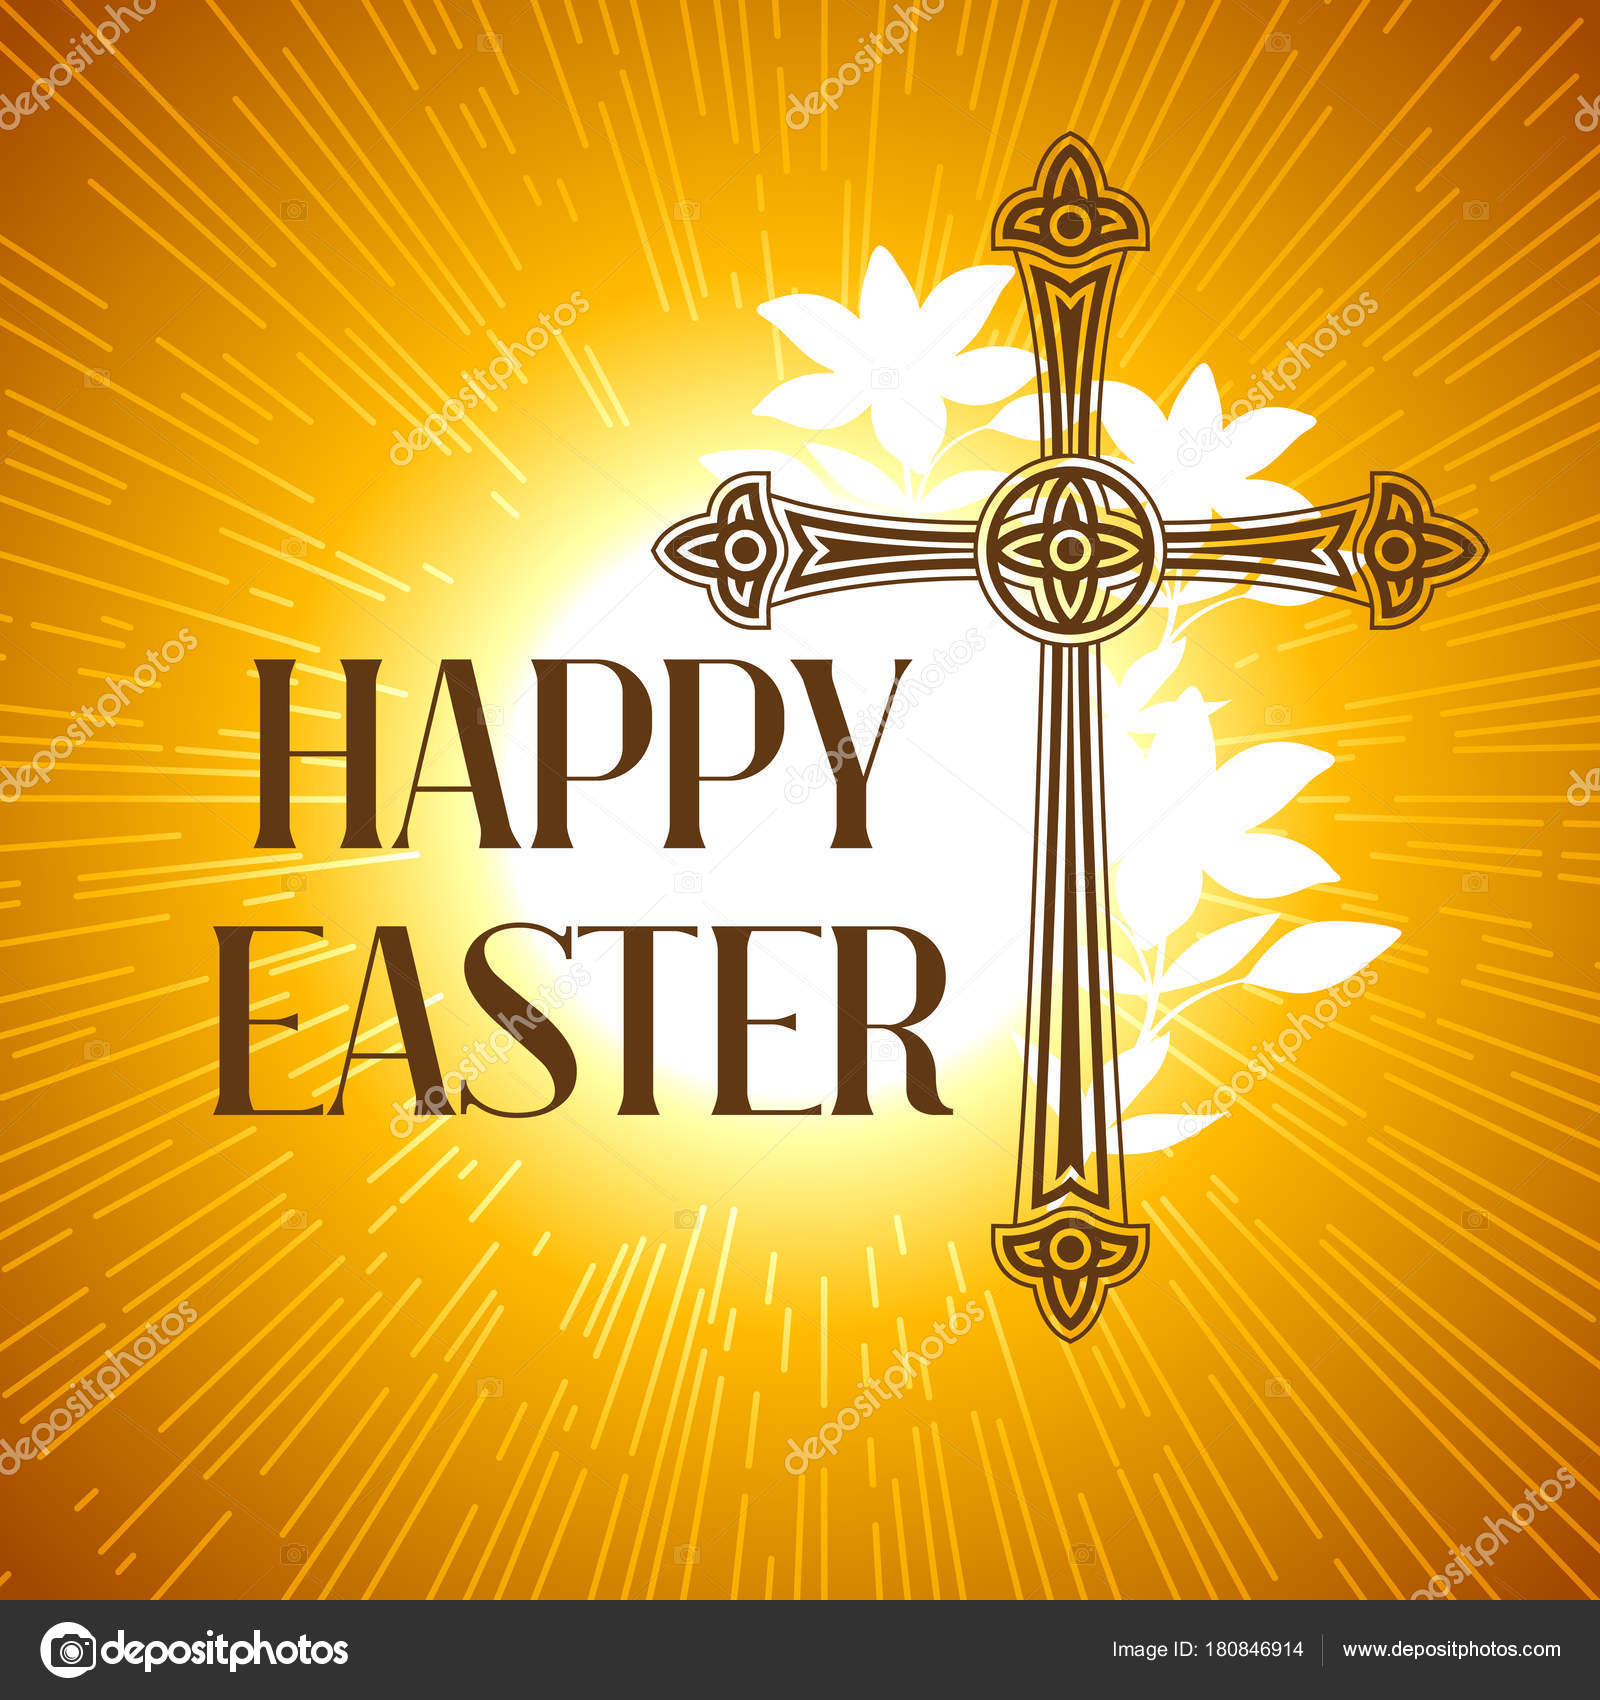 Silhouette Of Ornate Cross Happy Easter Concept Illustration Or